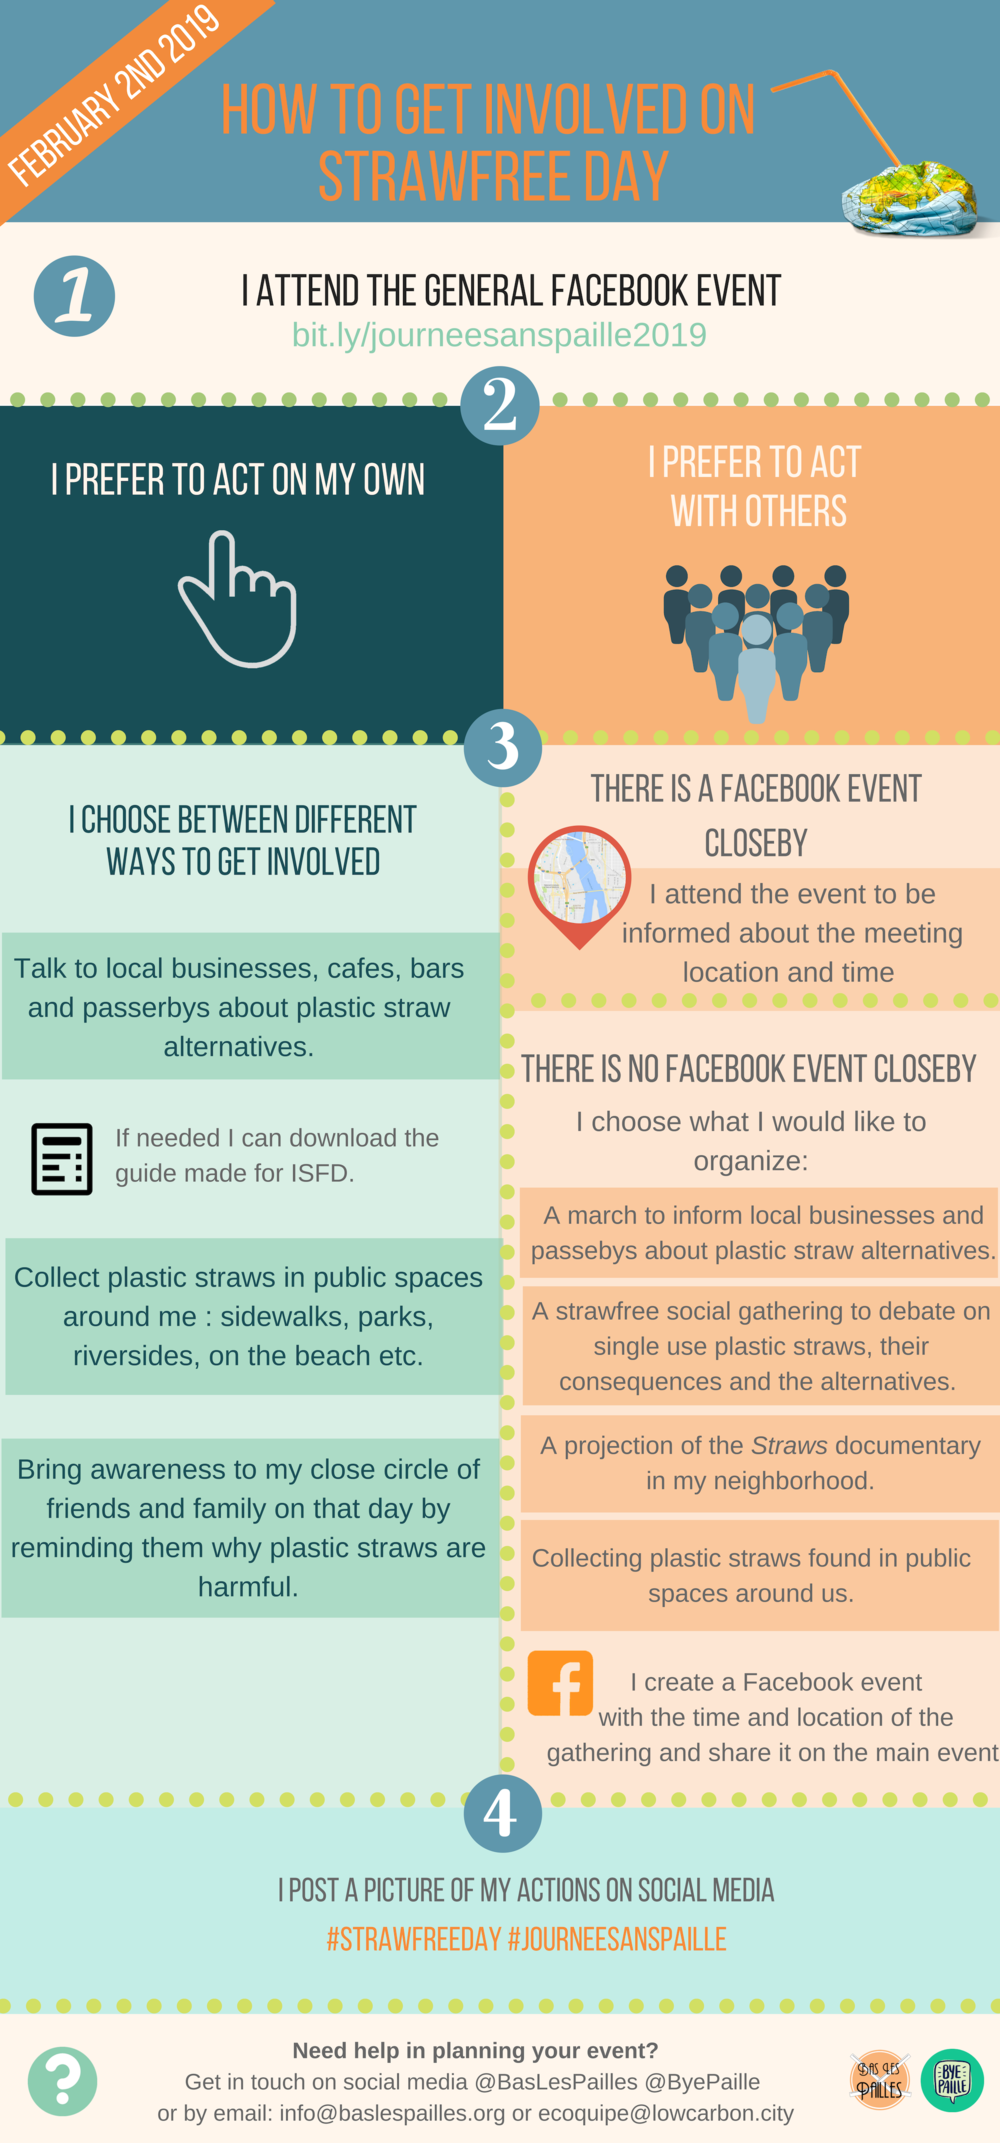 The infographic -